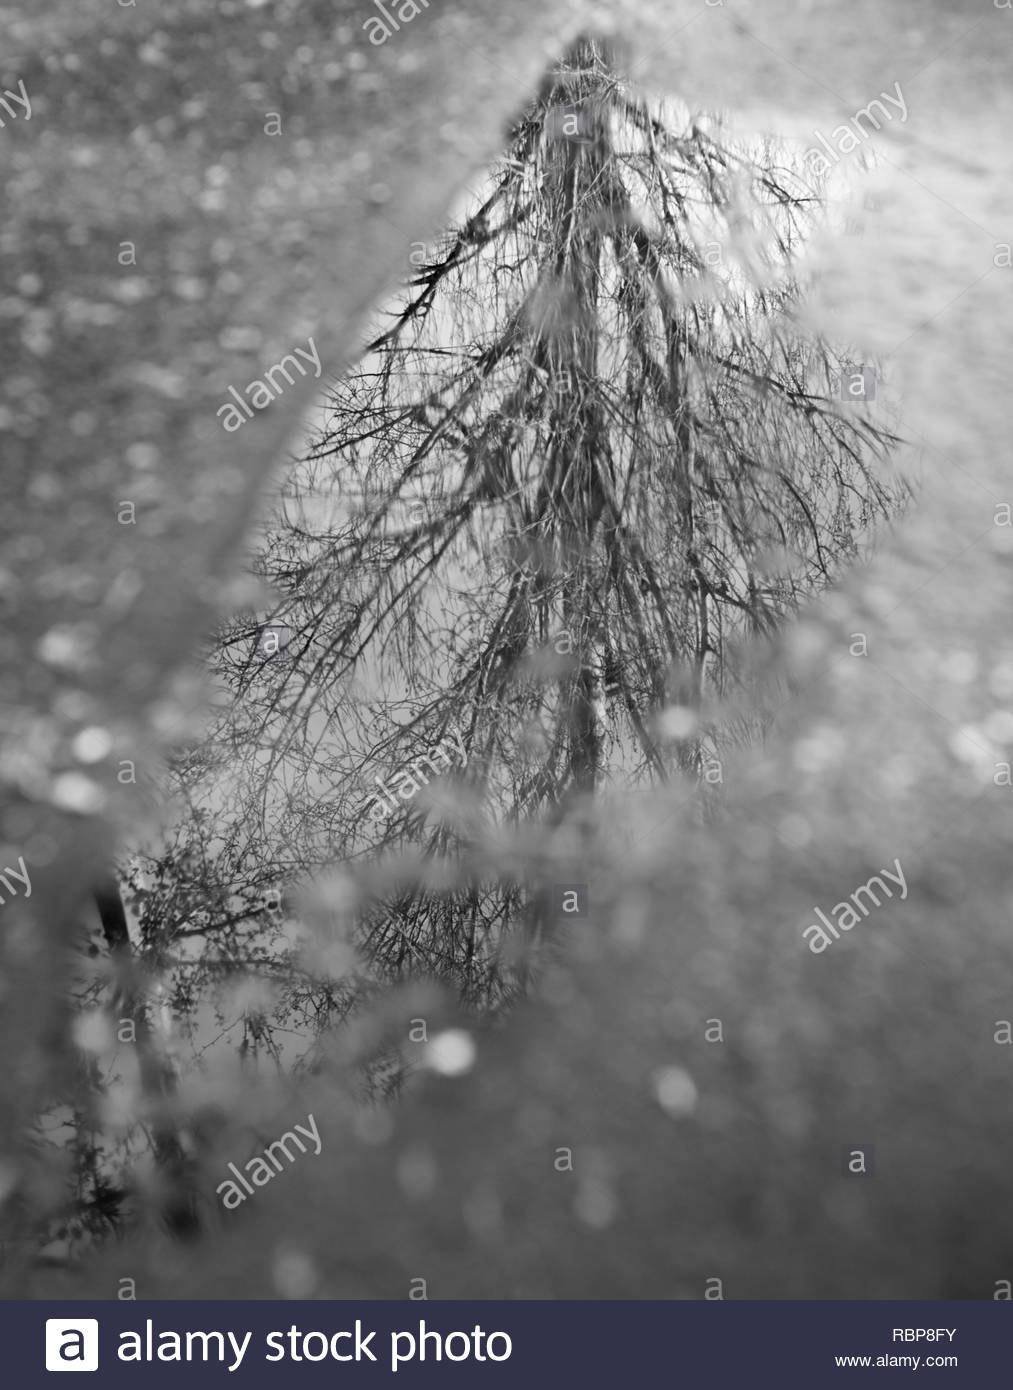 Tree reflection in puddle - Stock Image